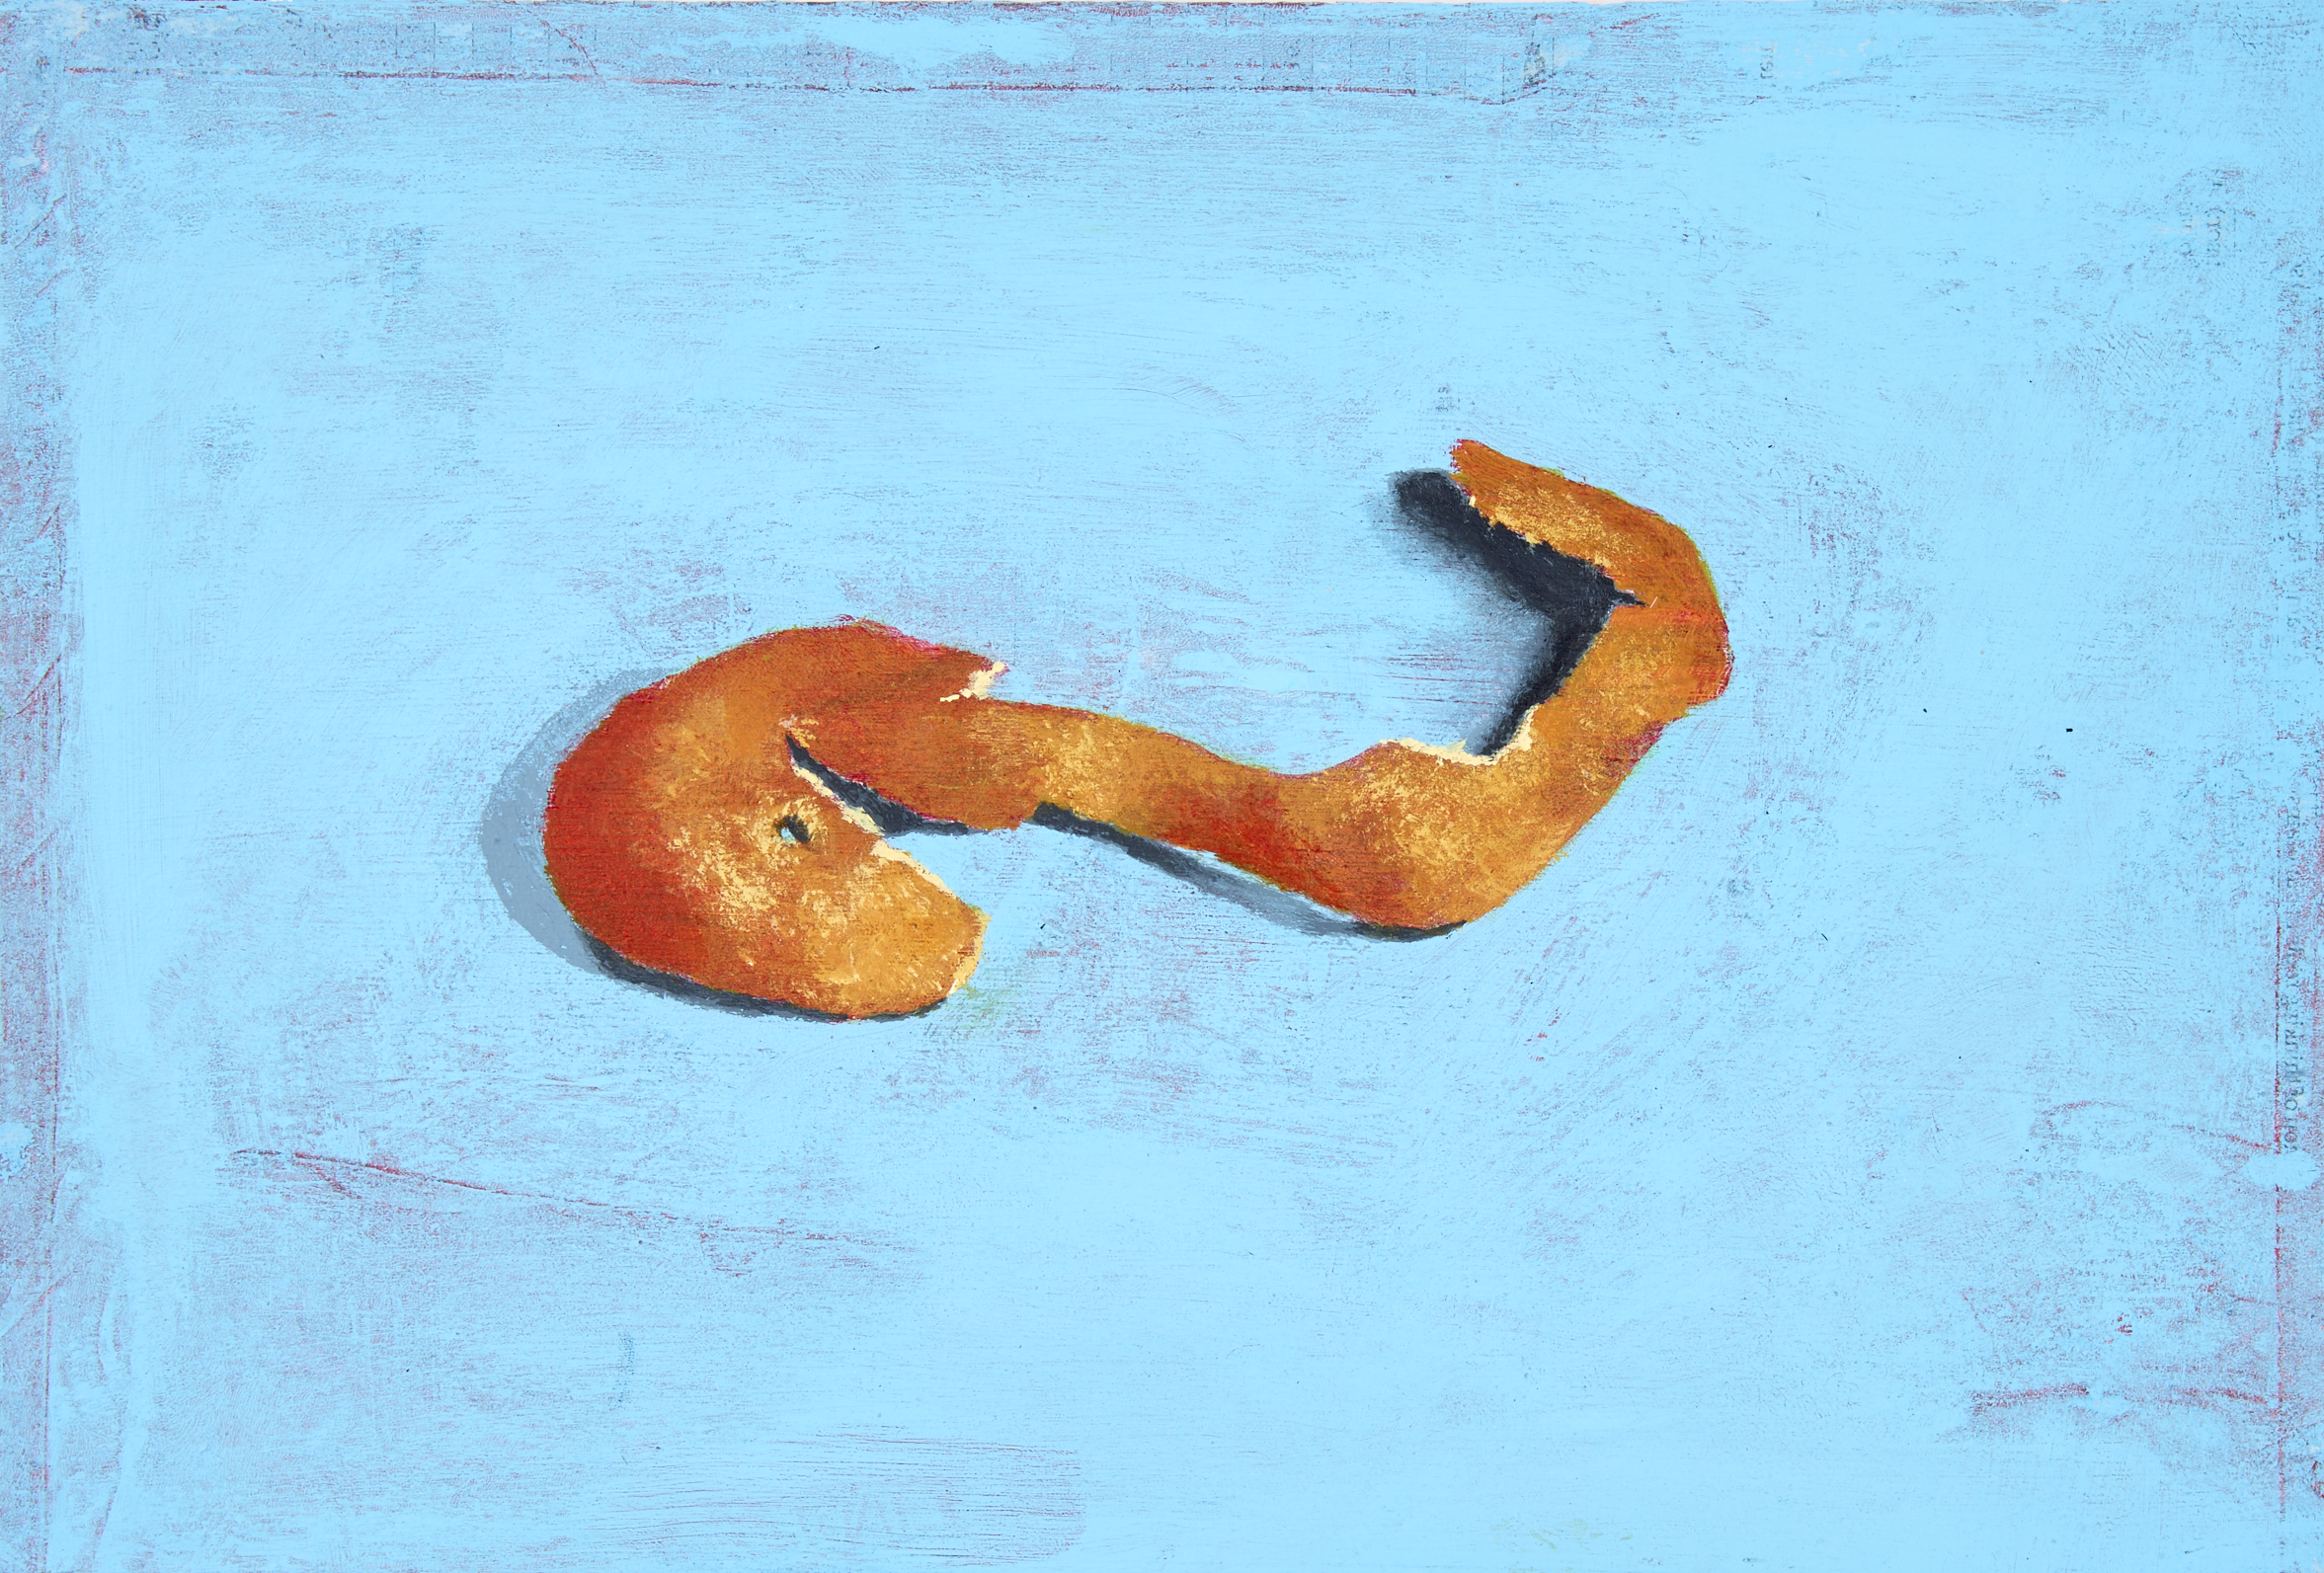 David Lyon Art - Aqua Orange Peel - 150dpi.jpg